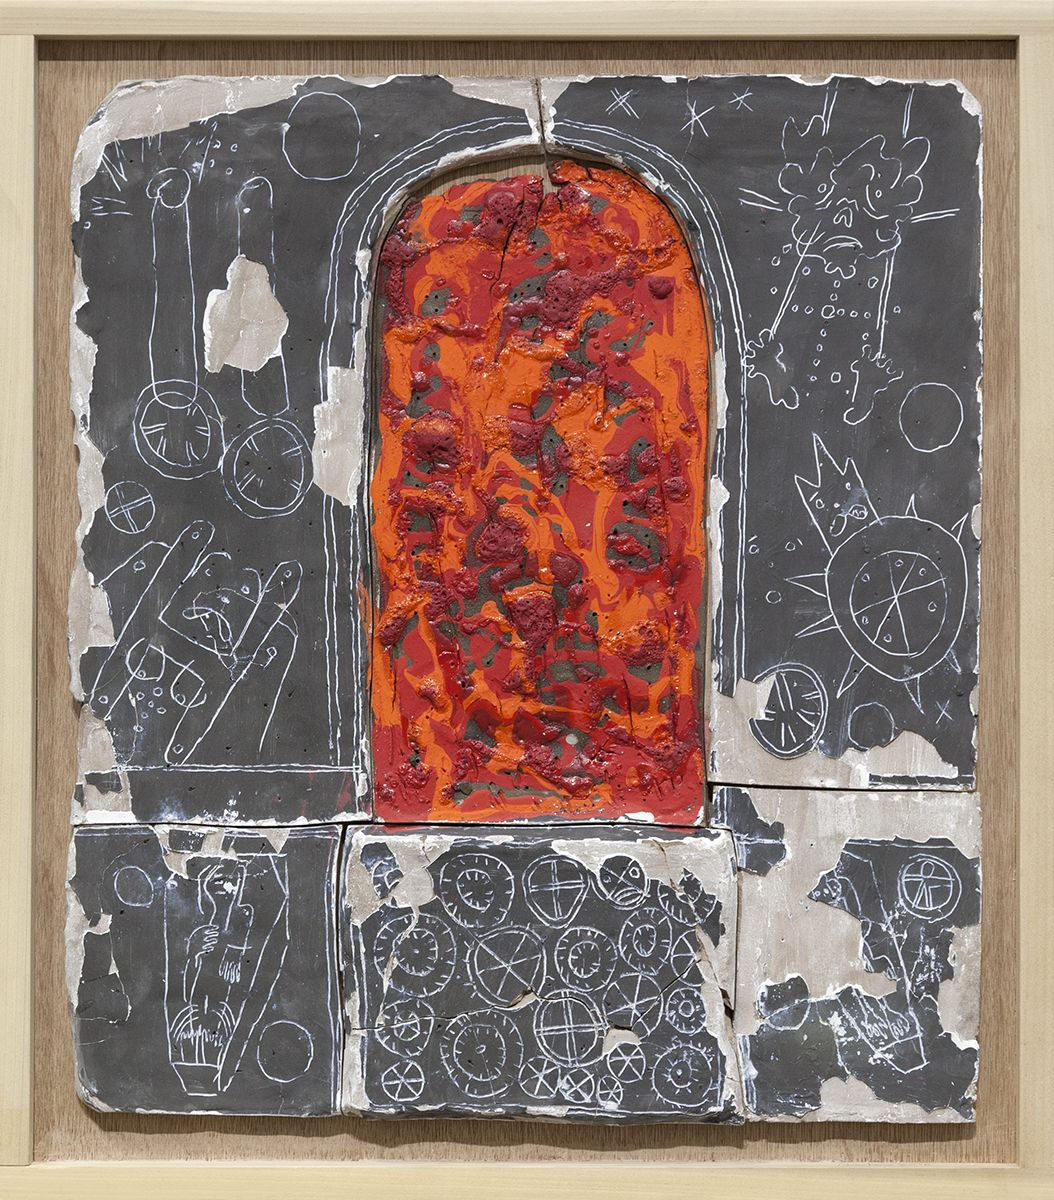 Richard Hawkins  Norogachian Consecration of Blood and Sperm, 2016  Glazed ceramic in artist's frame   25 3/4 x 22 5/8 x 2 inches (65.4 x 57.5 x 5.1 cm)